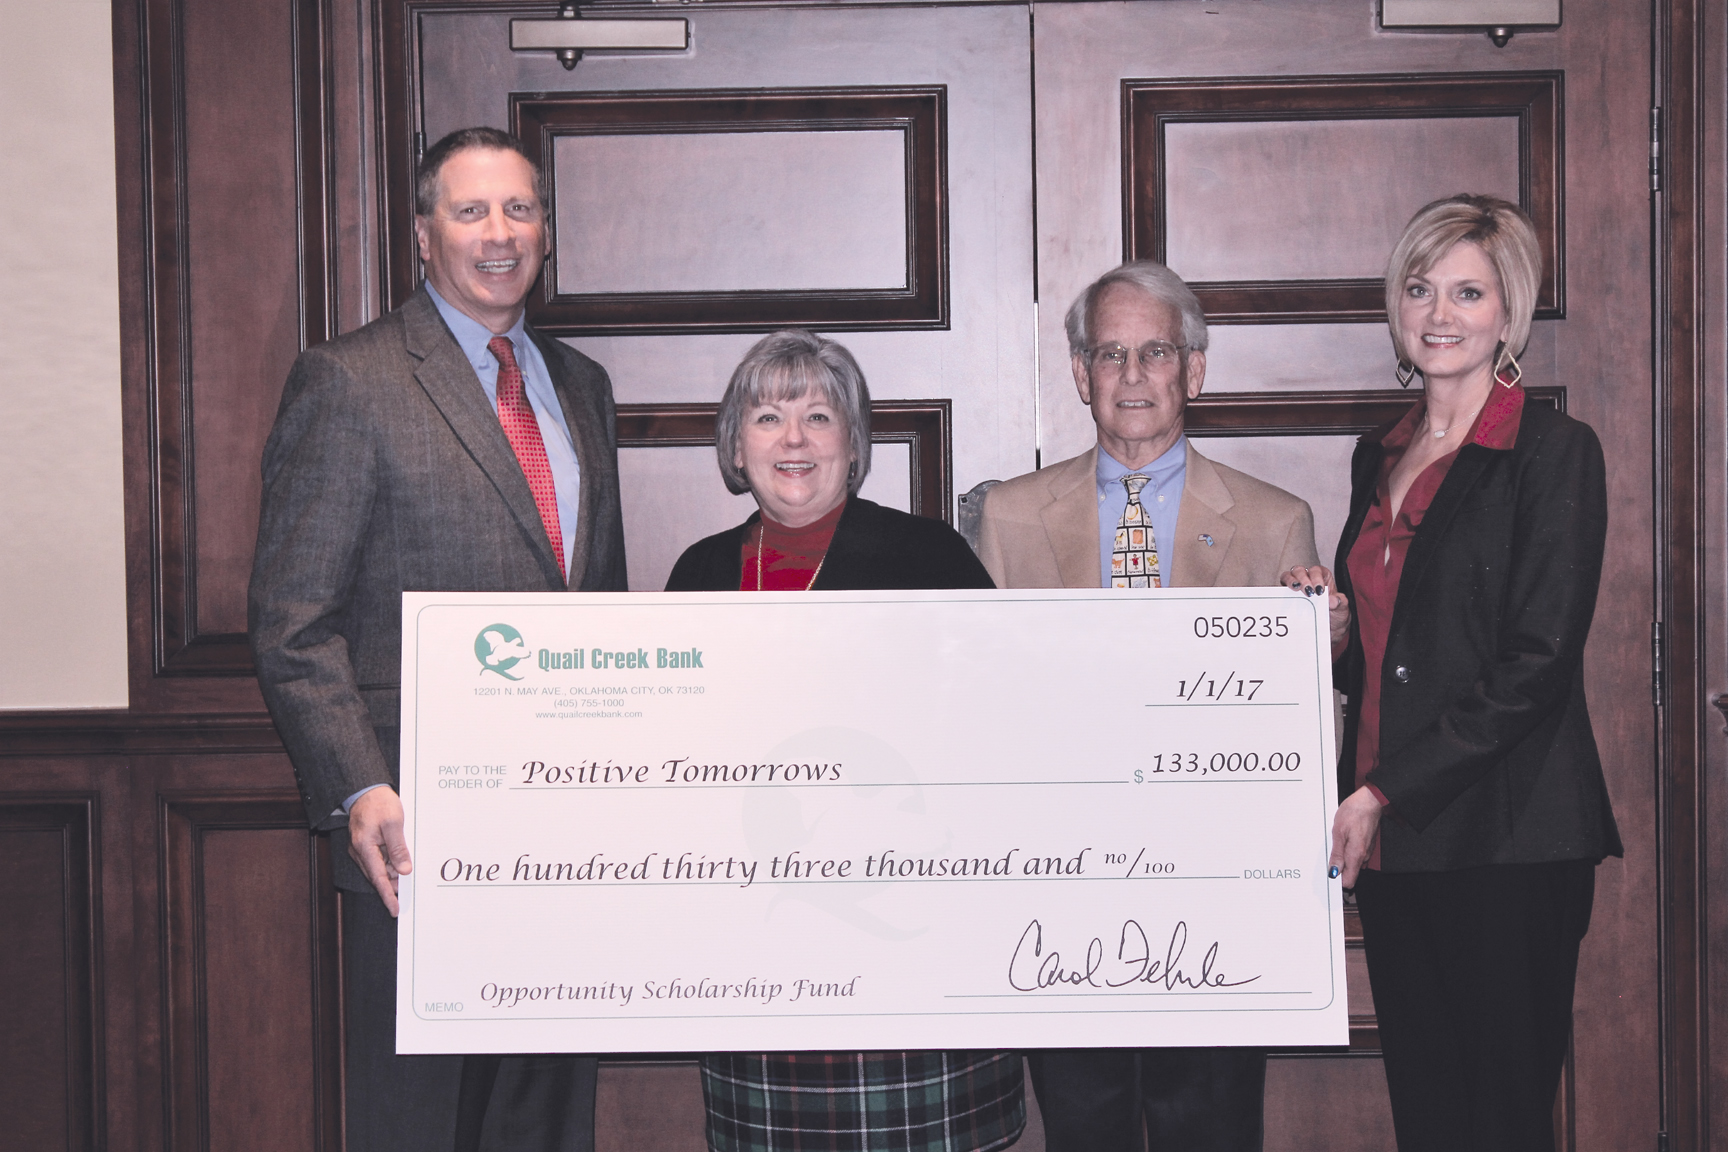 Osf College Of Nursing >> Bank makes major gift to scholarship unique education ...